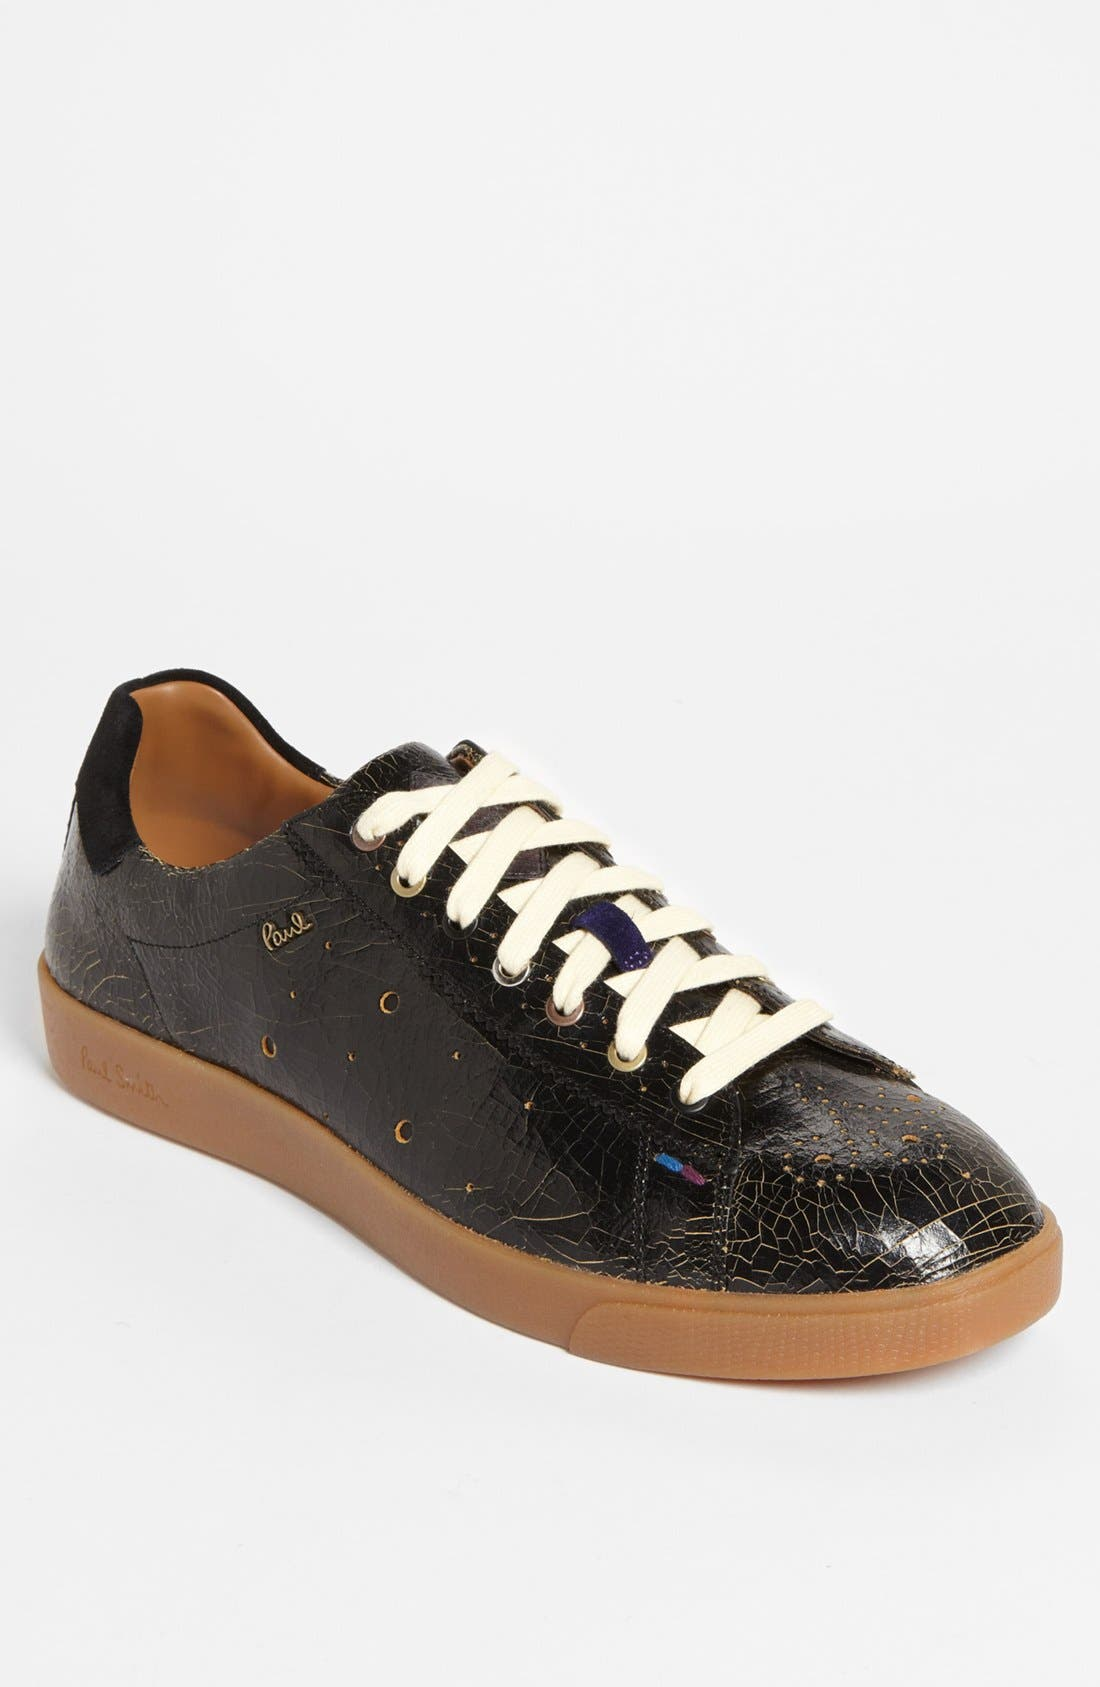 Alternate Image 1 Selected - Paul Smith 'Lepus Old Boy' Sneaker